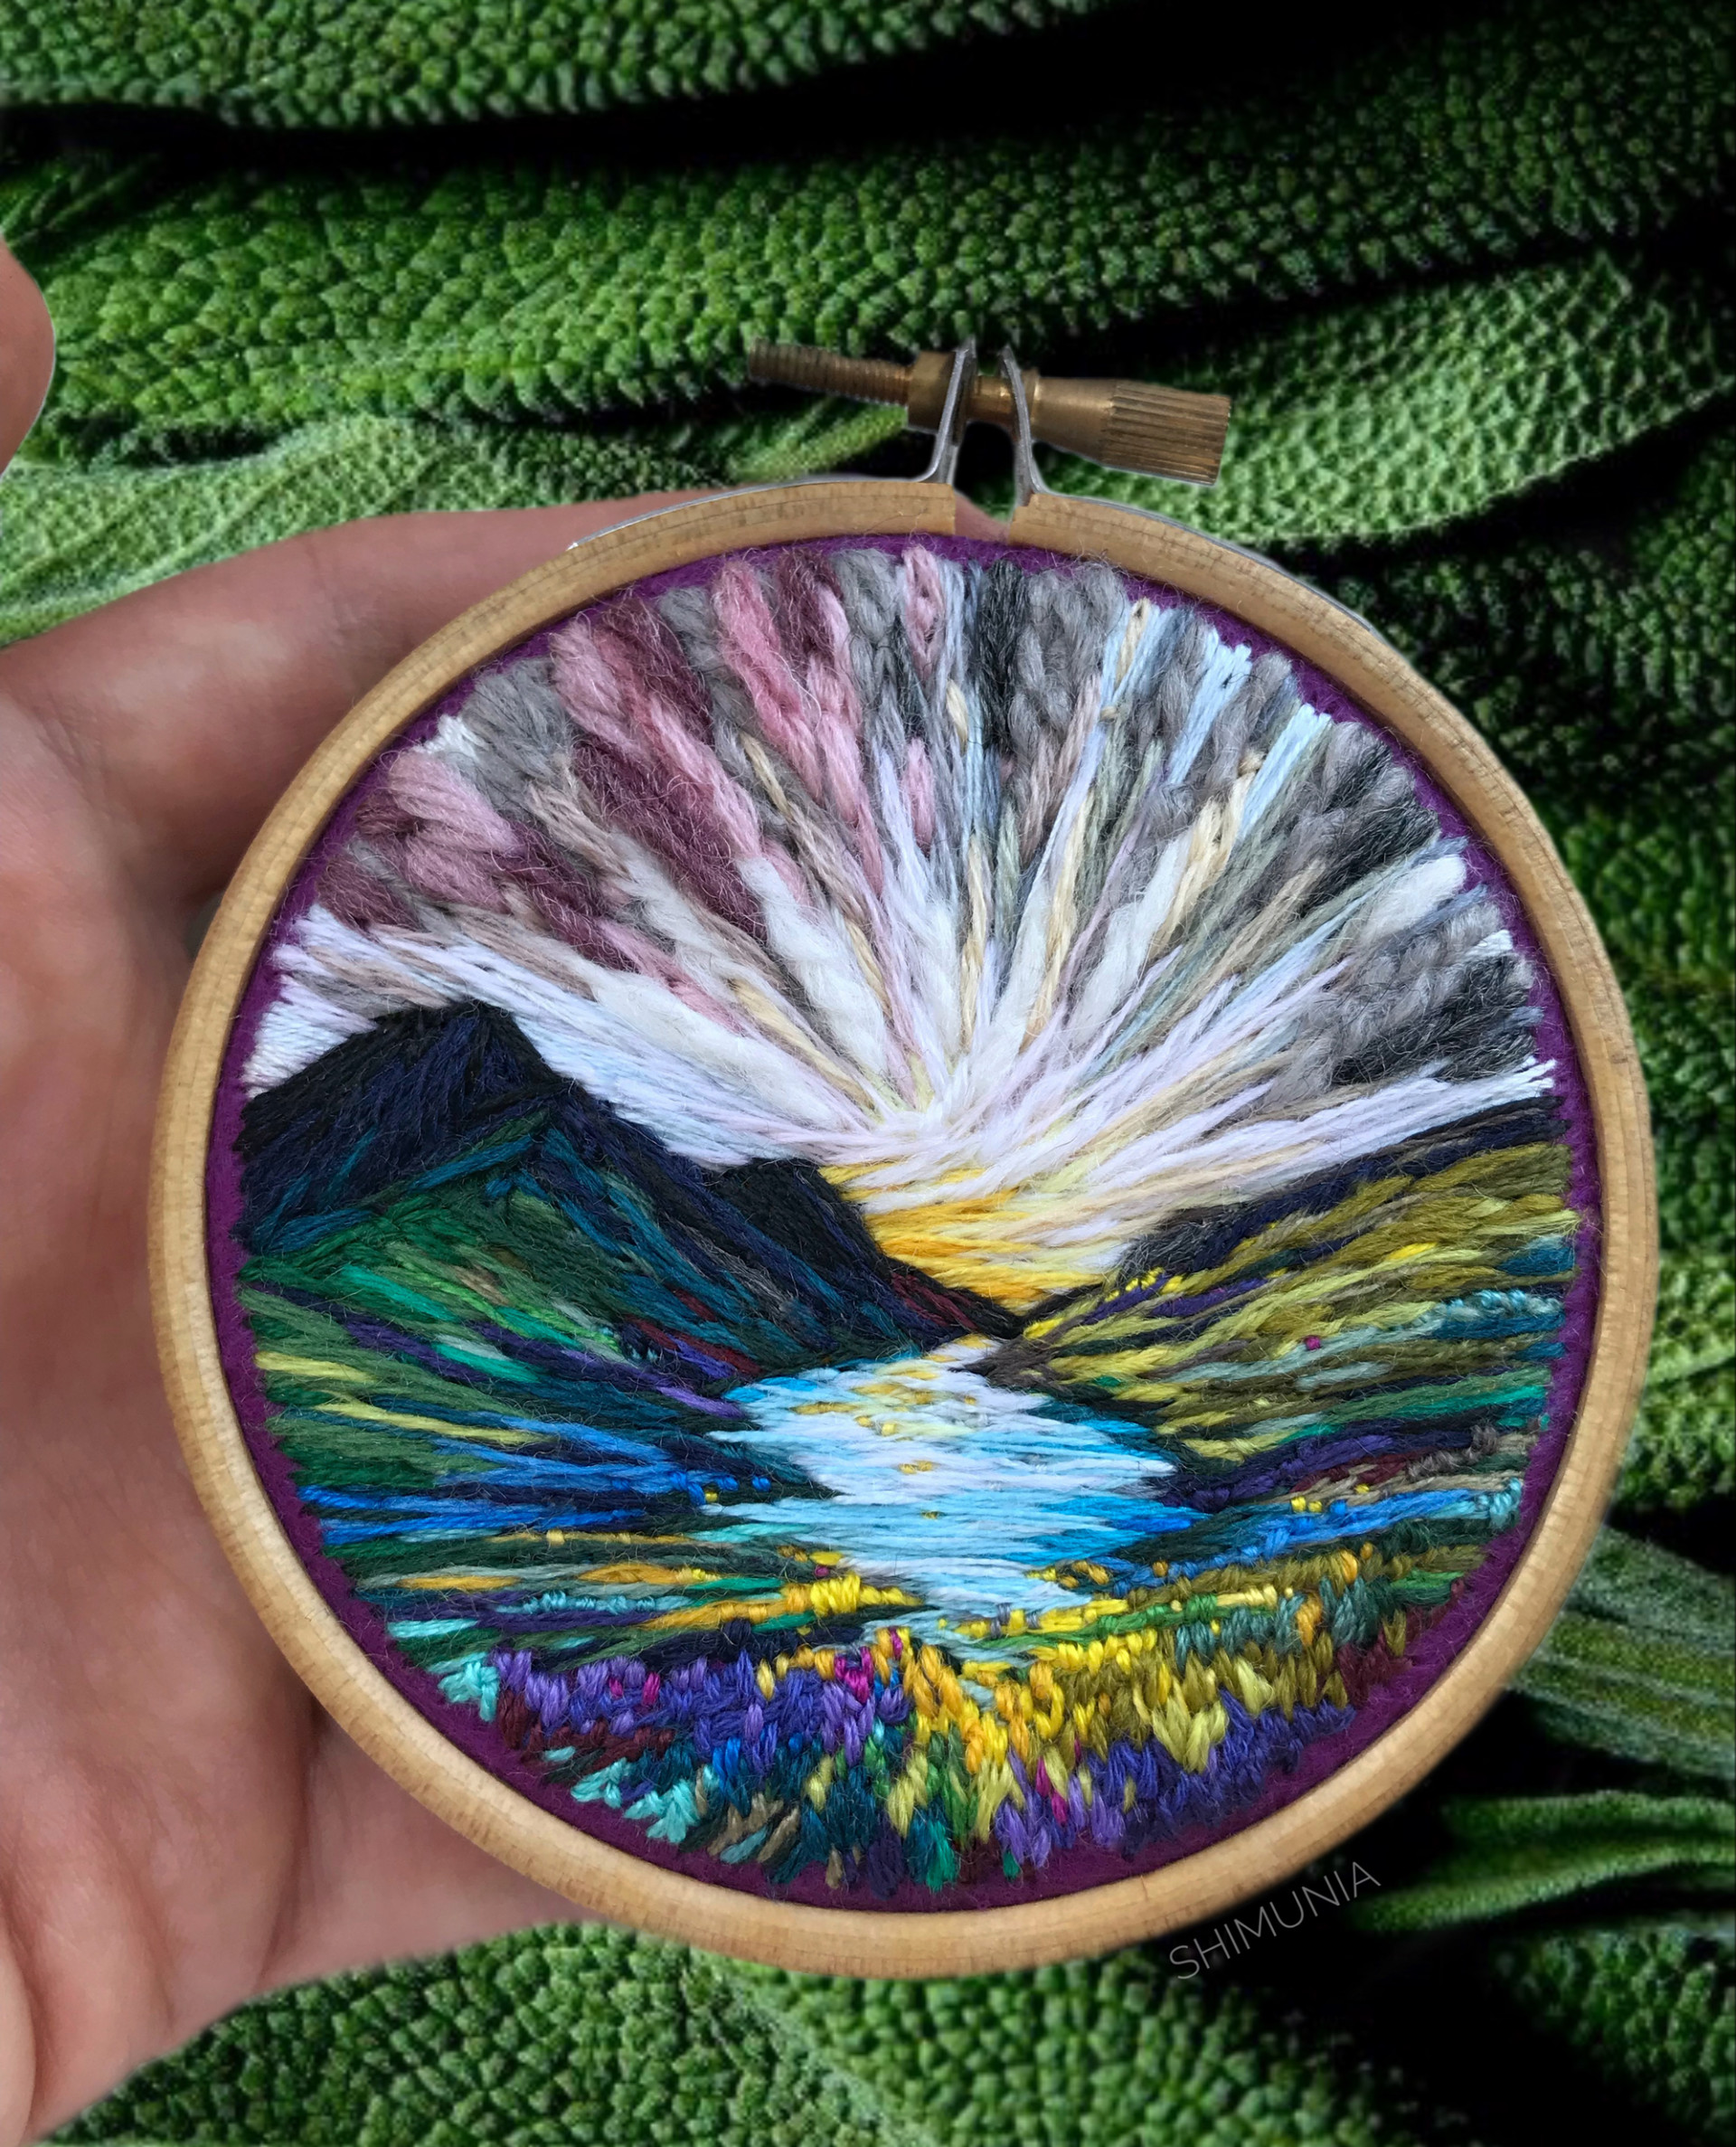 embroidery-5-960x1187@2x.jpg